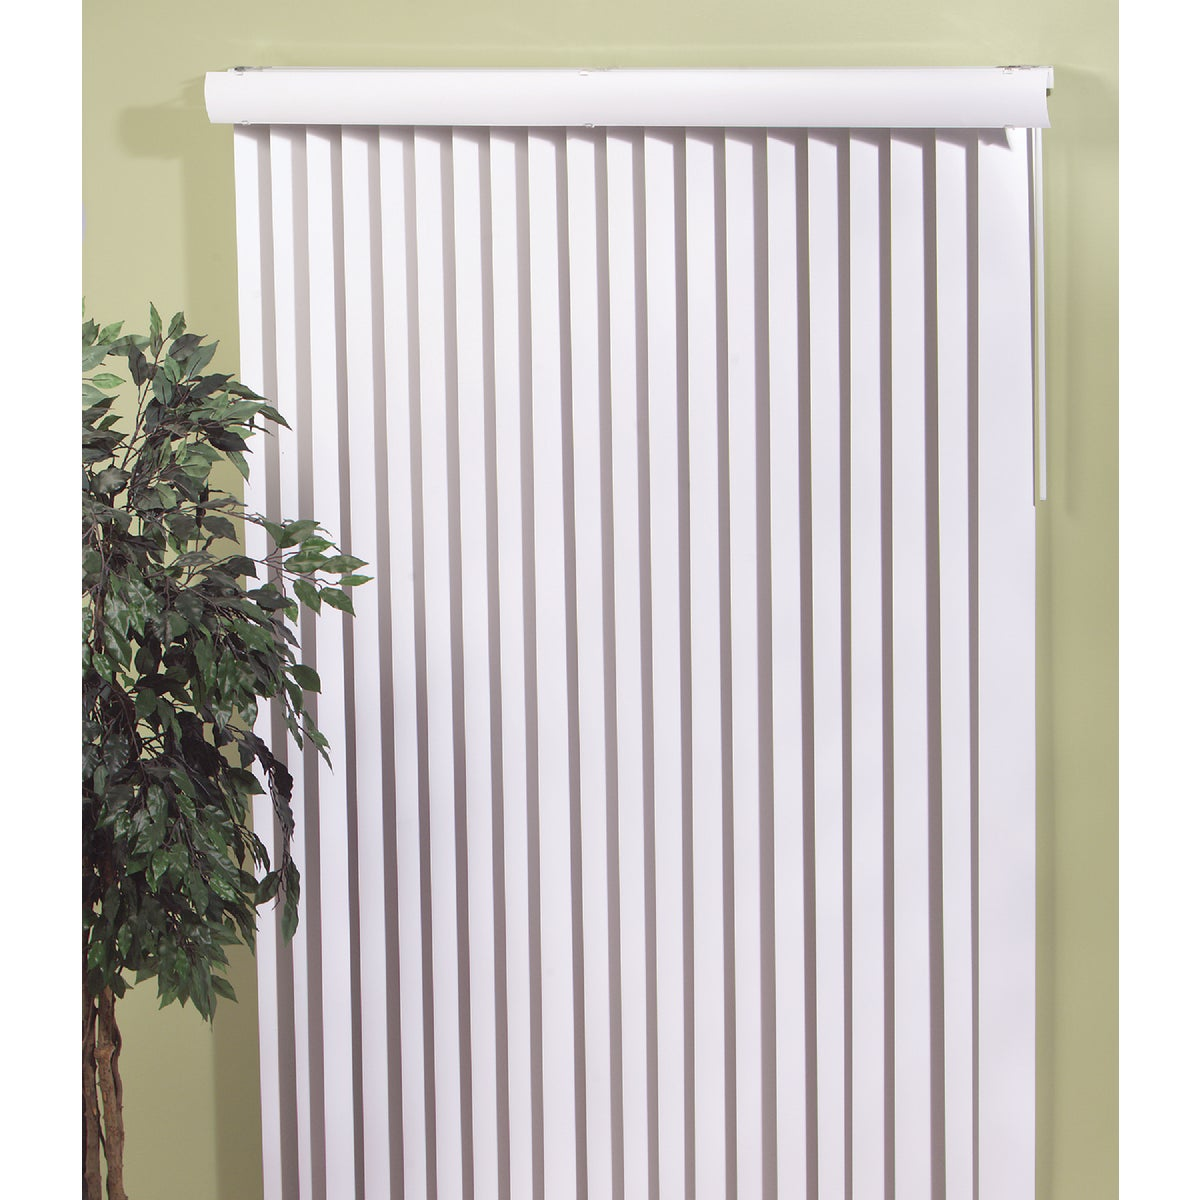 WHITE VERTICAL BLIND - 10484VW by Lotus Wind Incom